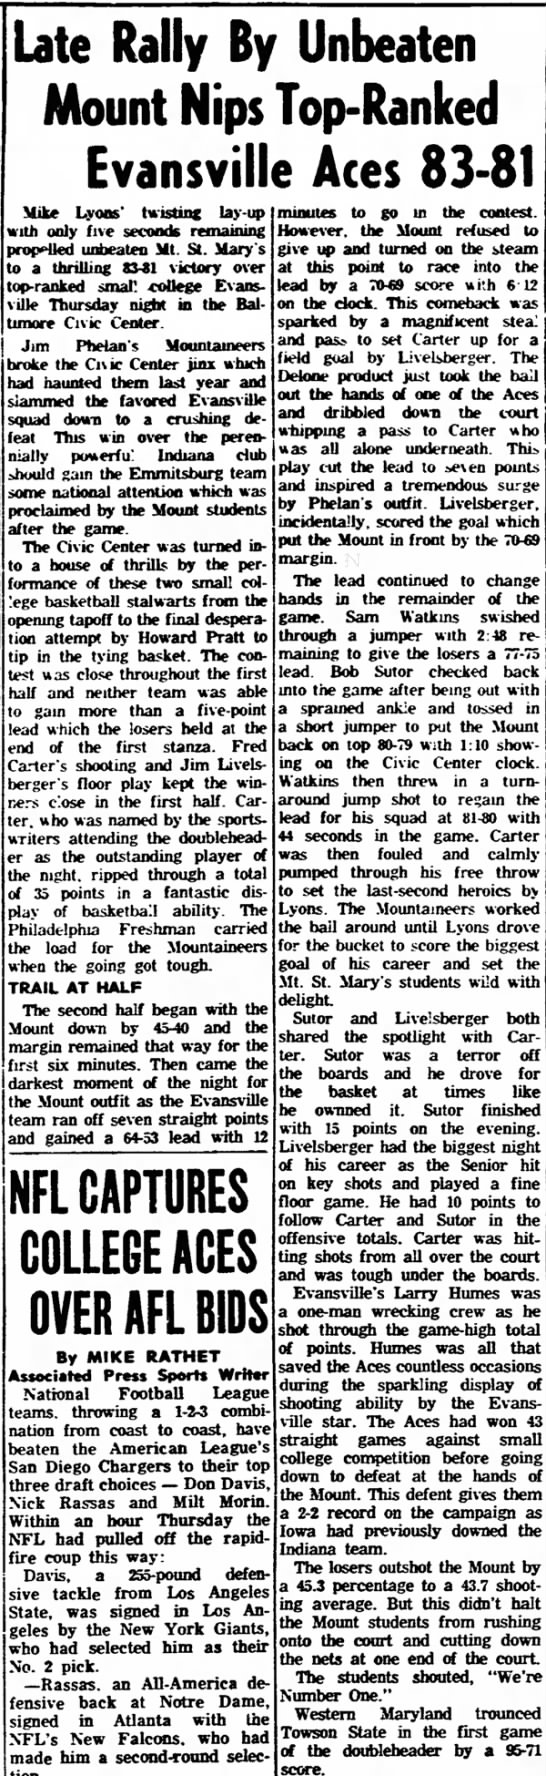 Dec 17, 1965 Gettysburg Times - on a up Orange Late Rally By Unbeaten Mount...